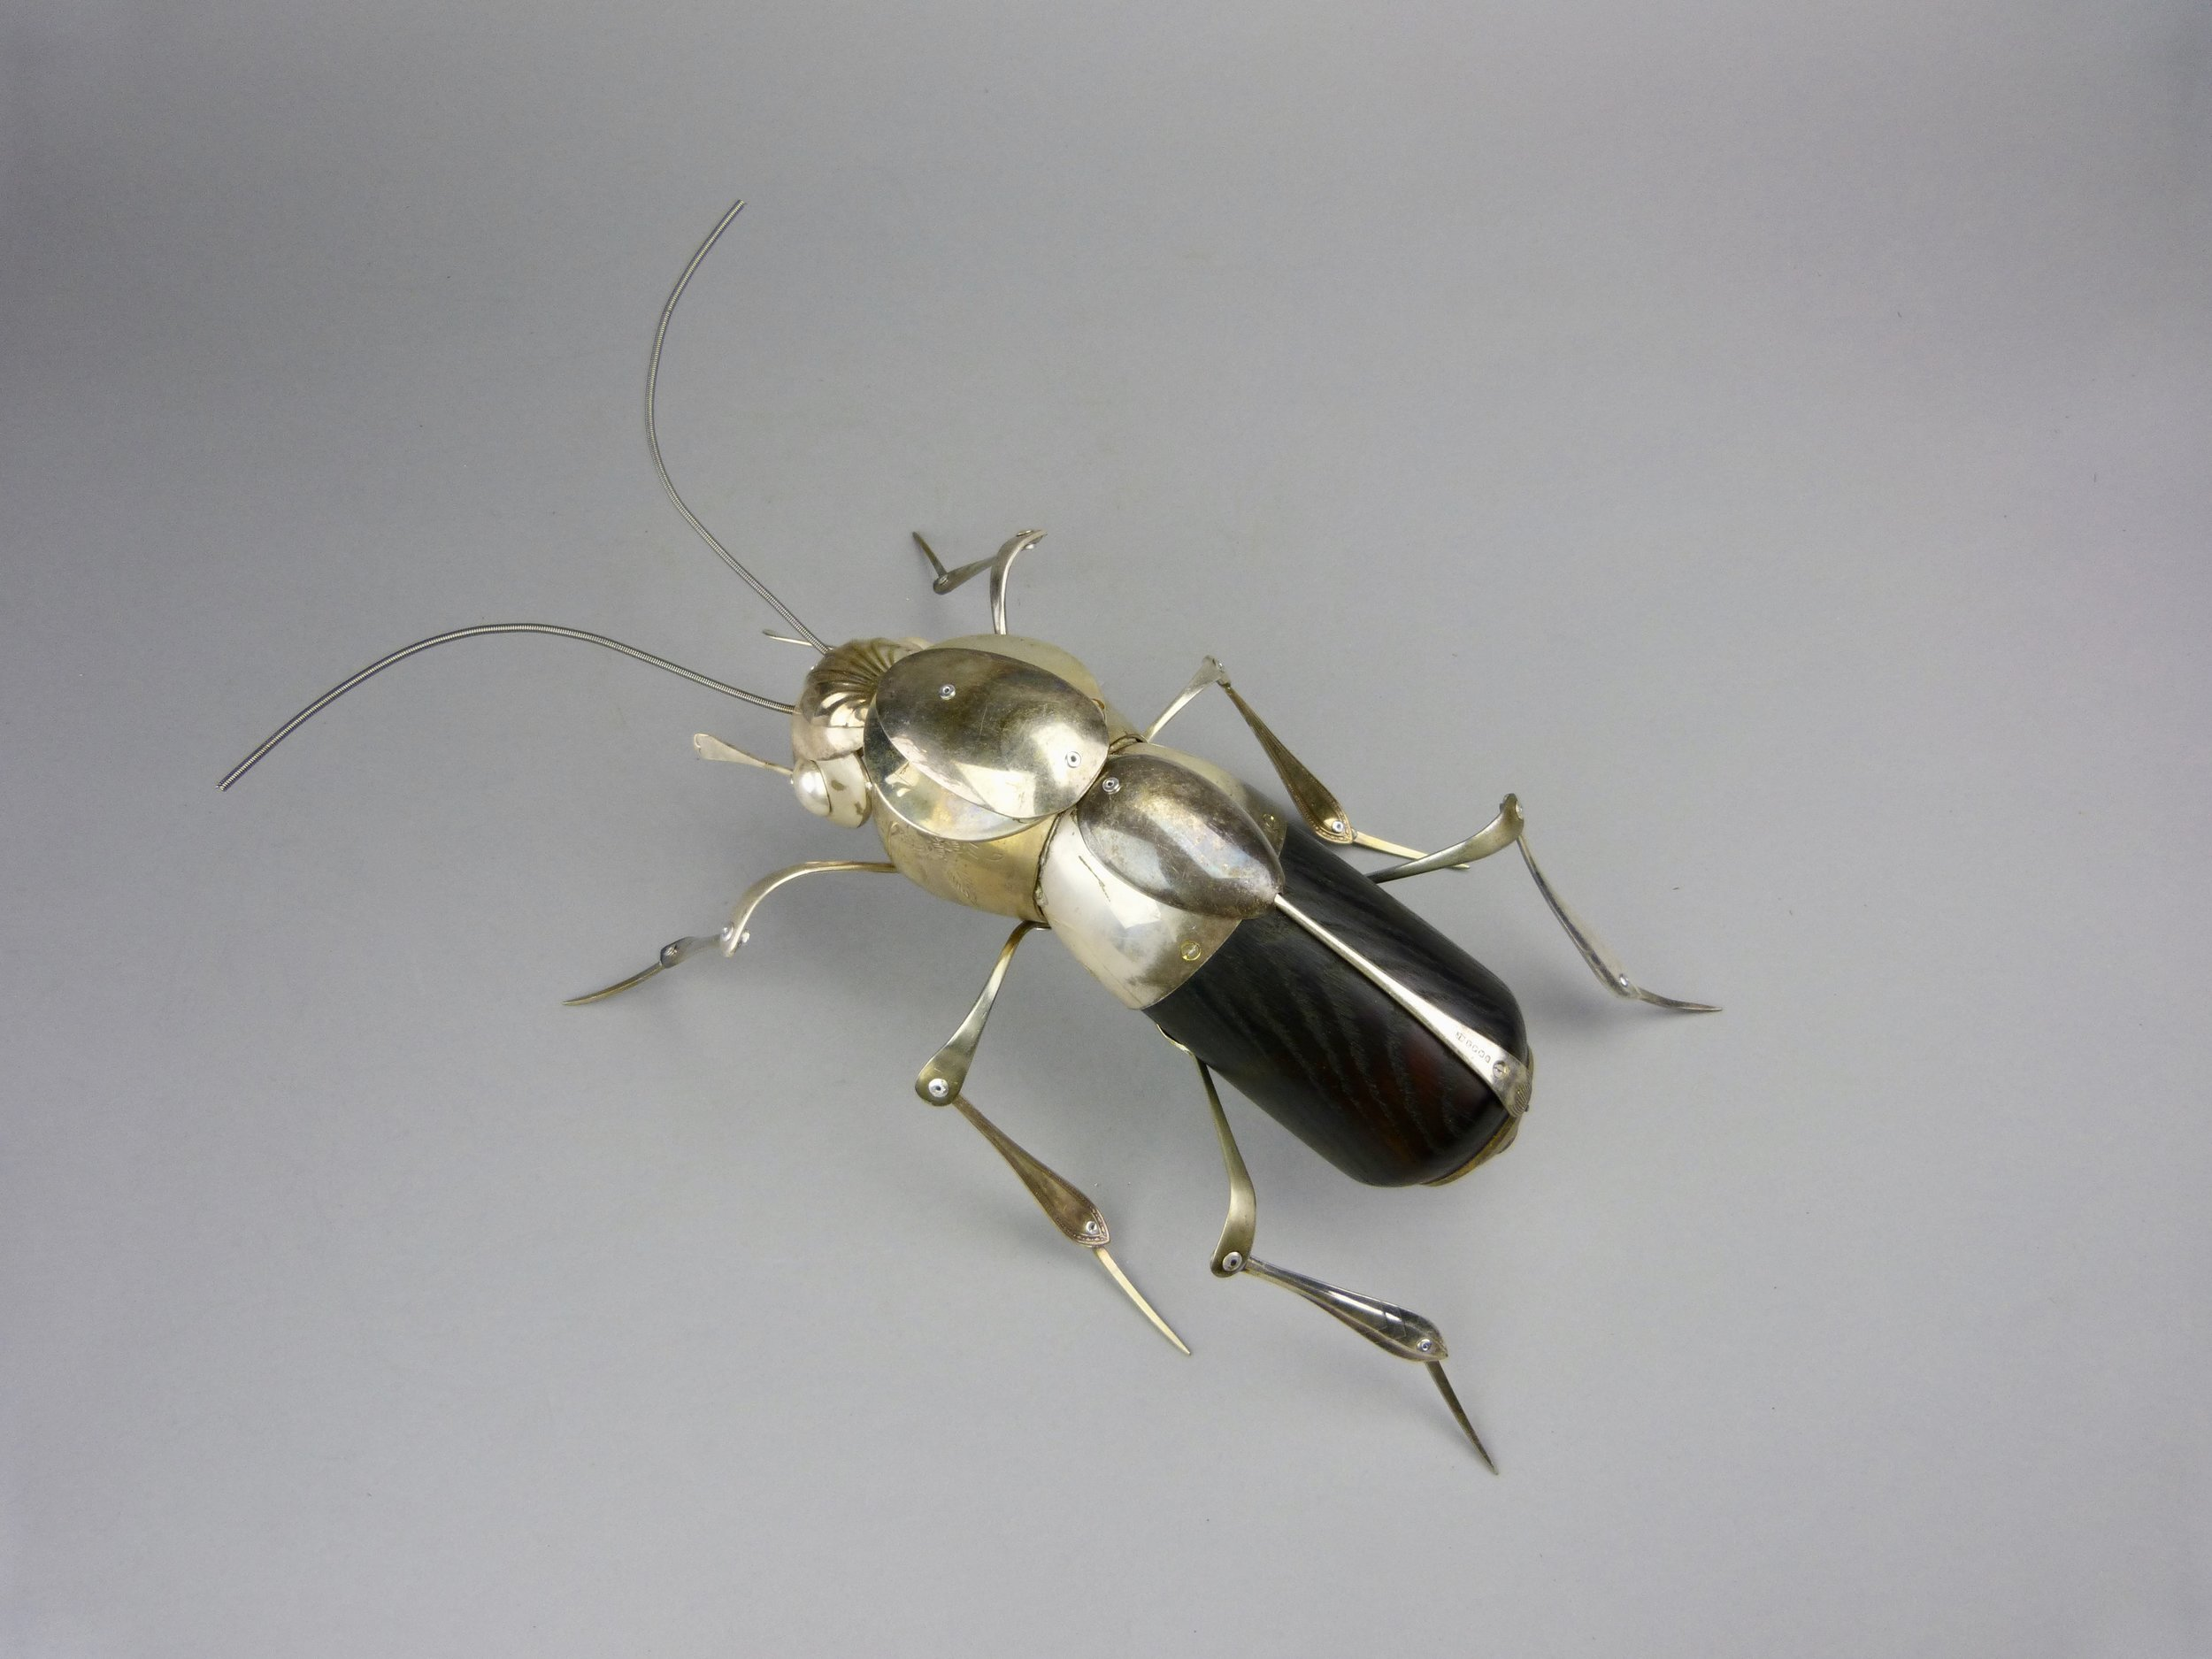 Artist: Dean Patman  Title: Soldier Beetle  Size: 43 cm (length)  Medium: Mixed media  Price: £750